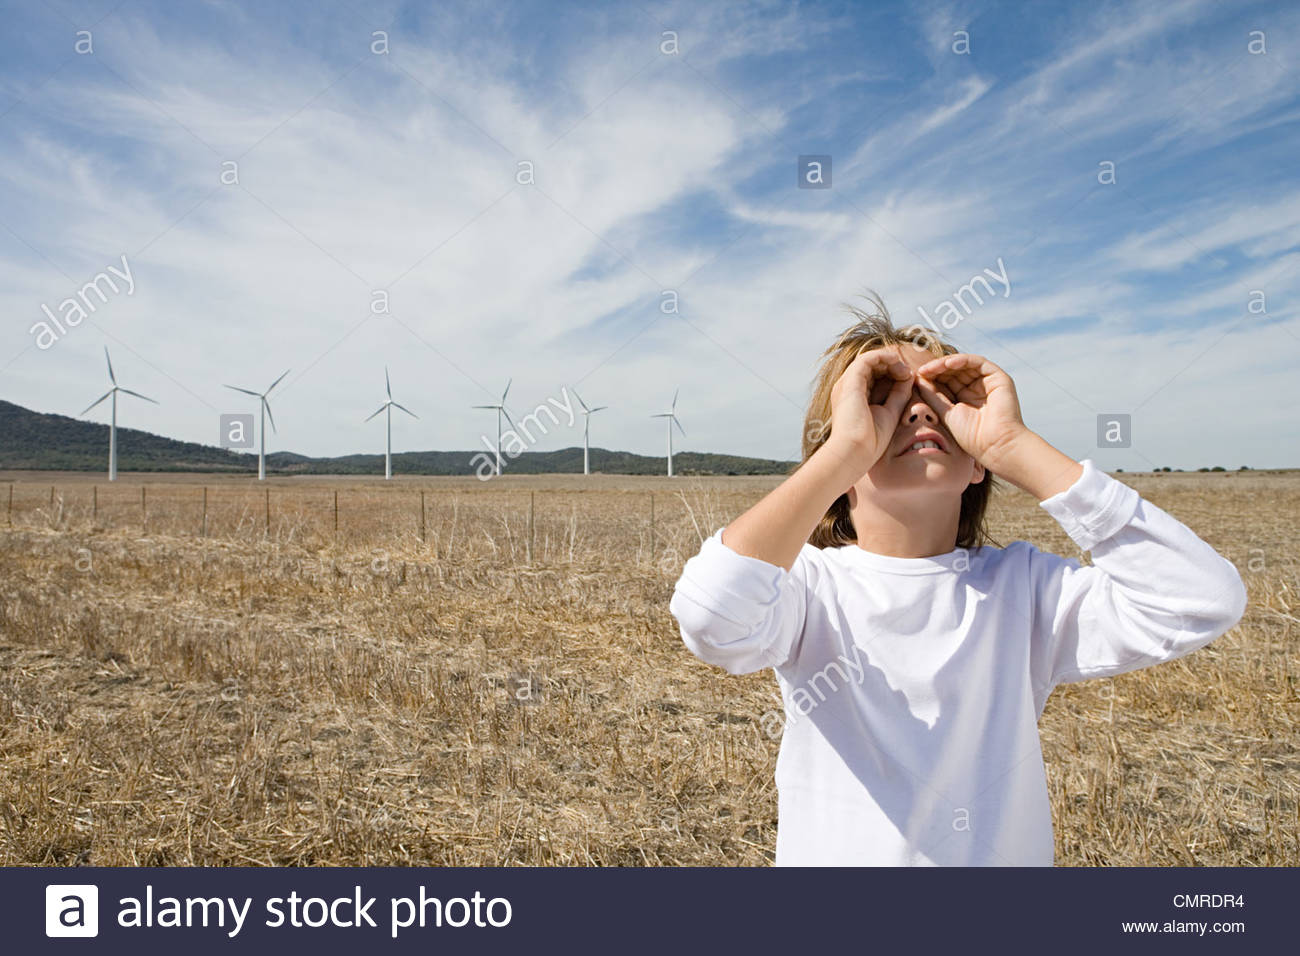 Boy in a field with wind turbines - Stock Image